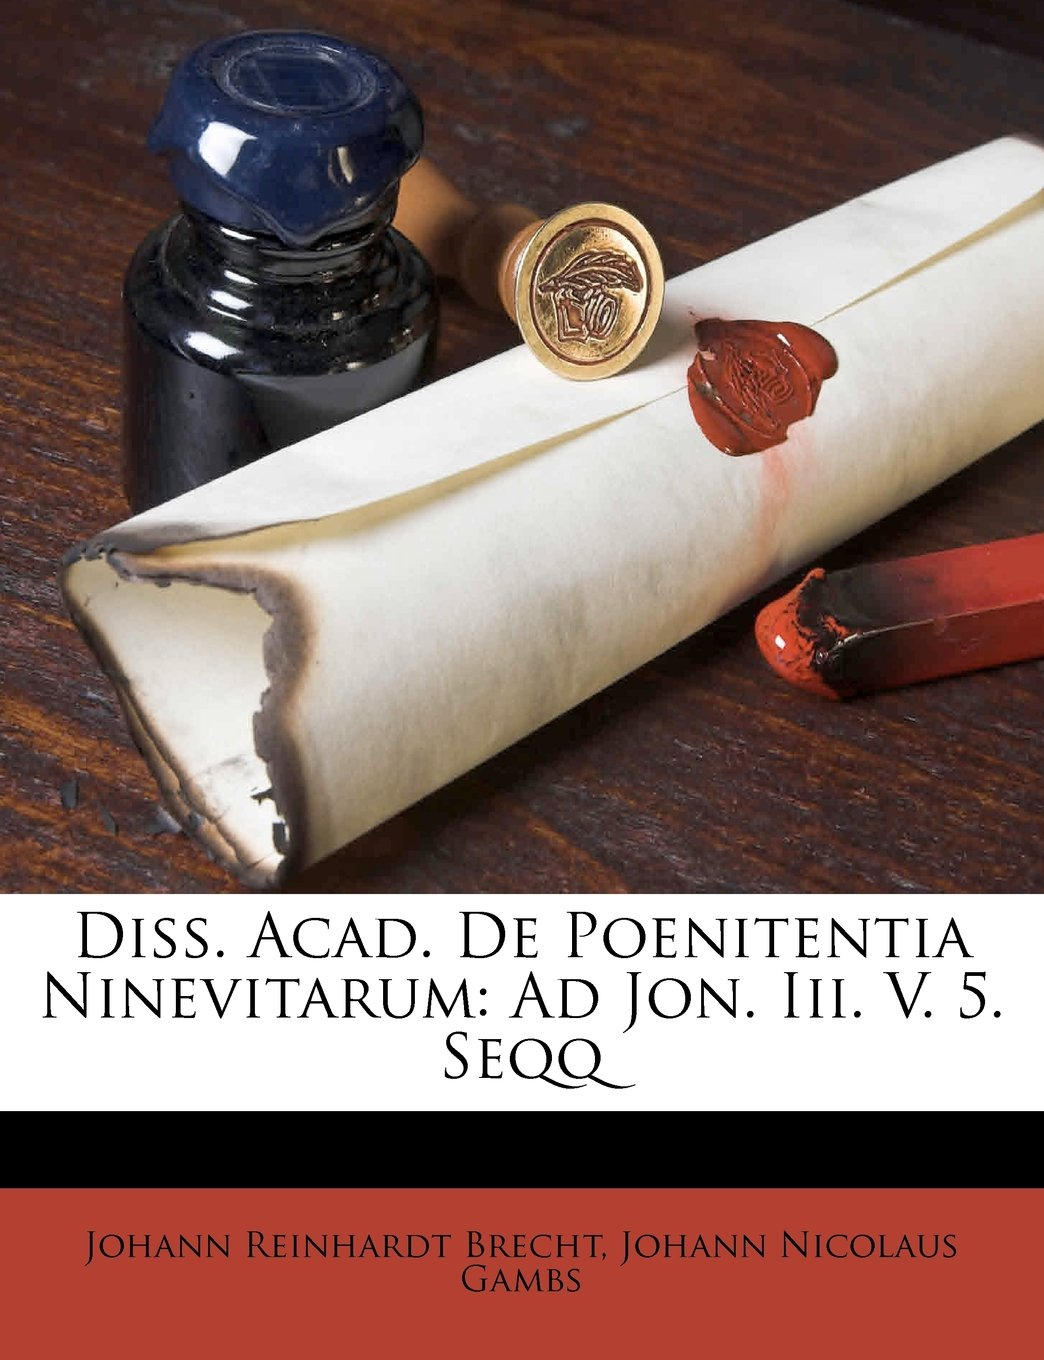 Download Diss. Acad. De Poenitentia Ninevitarum: Ad Jon. Iii. V. 5. Seqq ebook